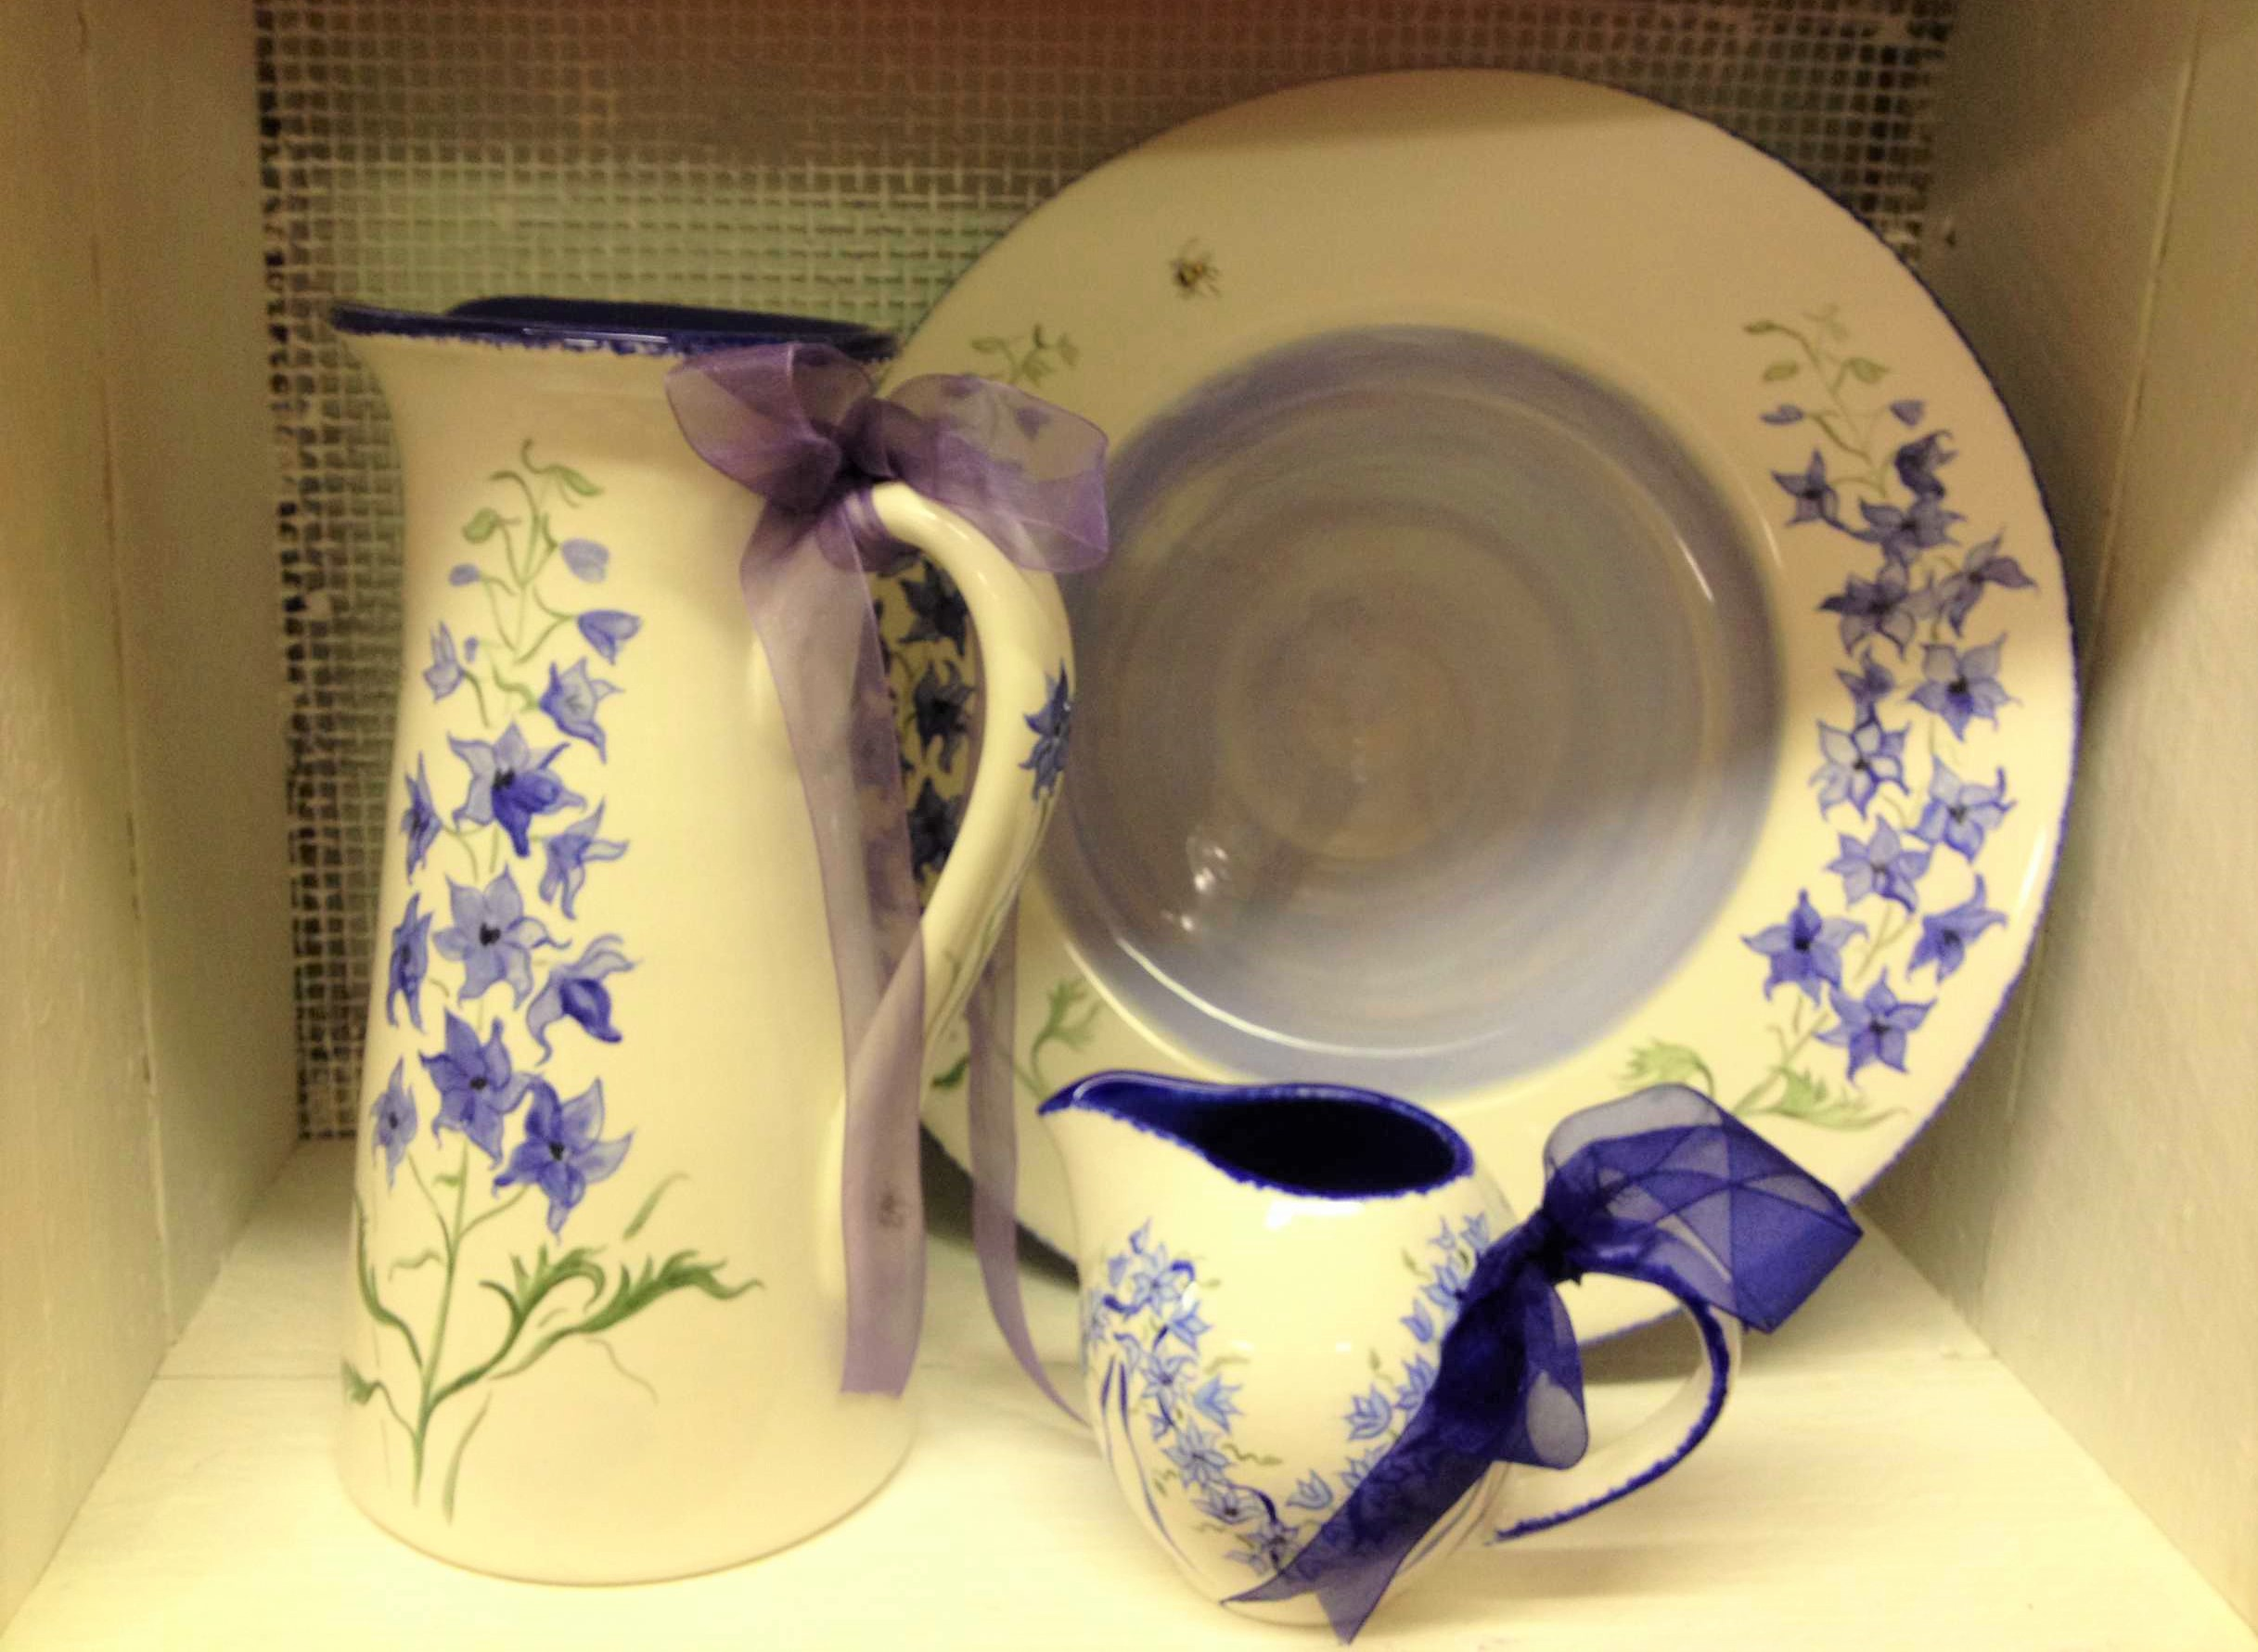 Tall Jug, Plate and short jug